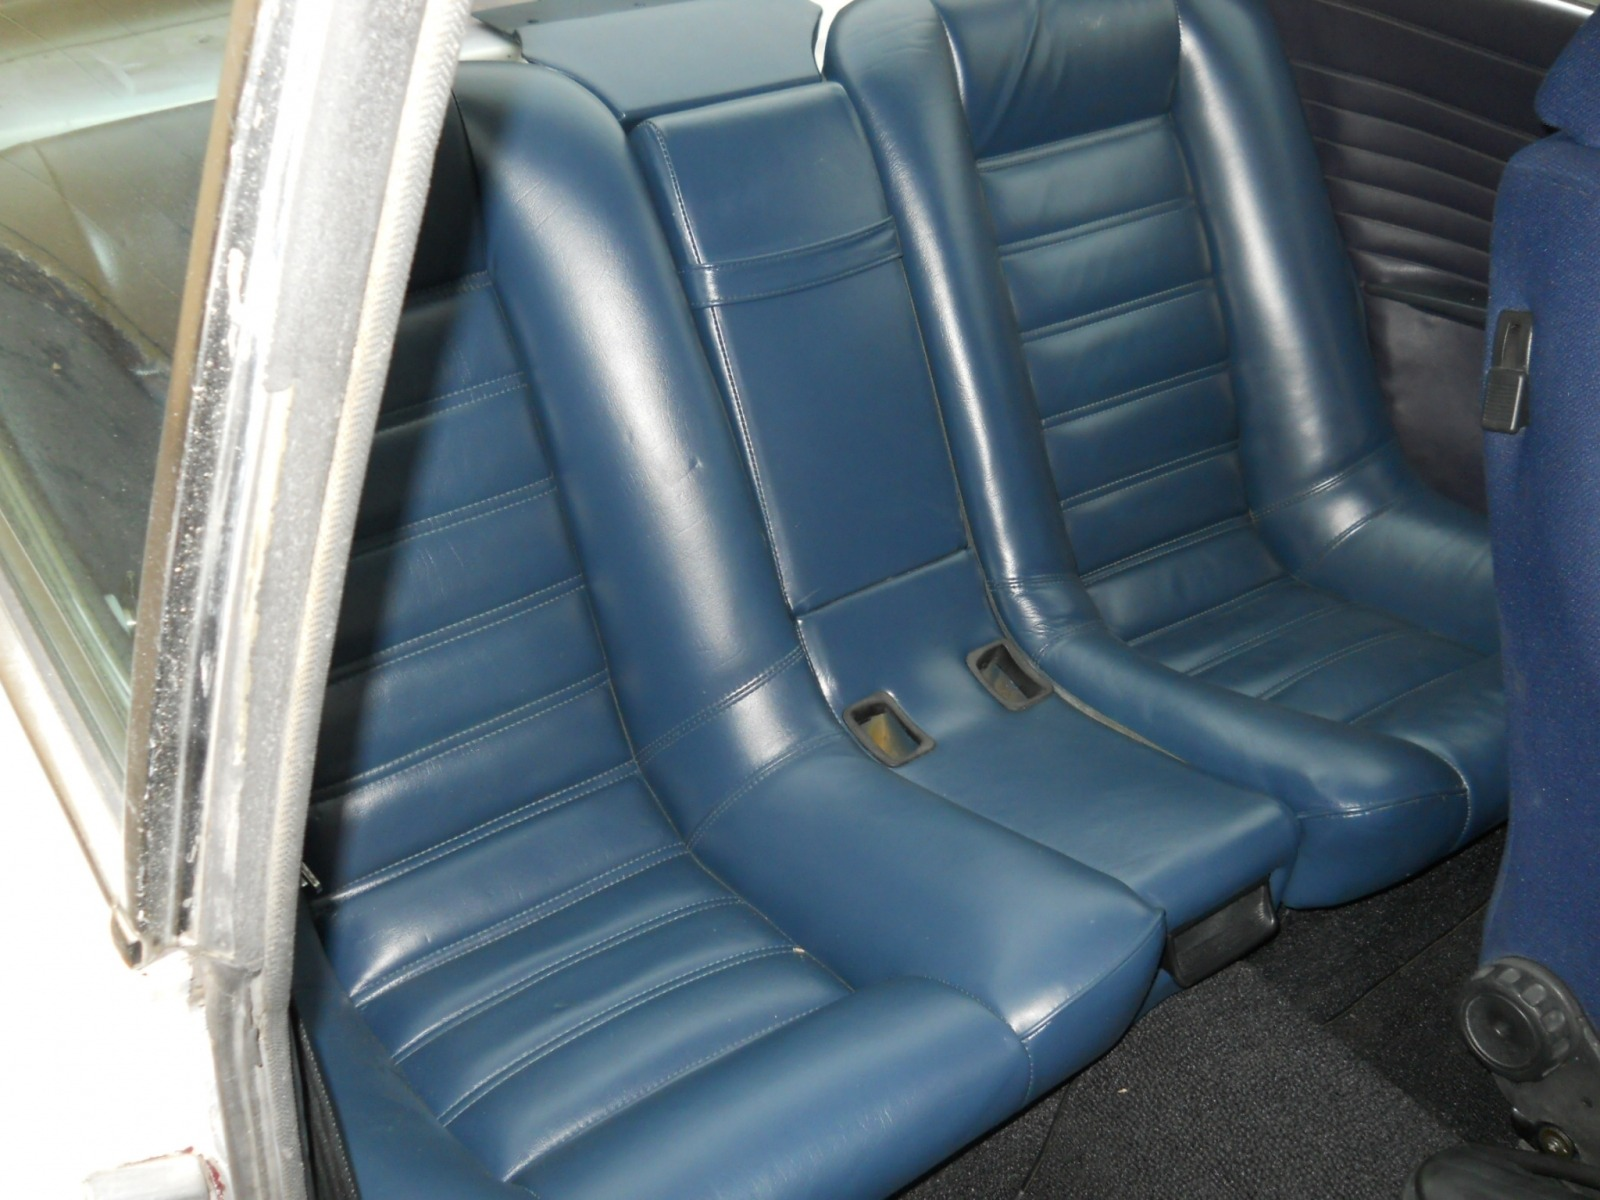 rear seats - no they don't just bolt in!